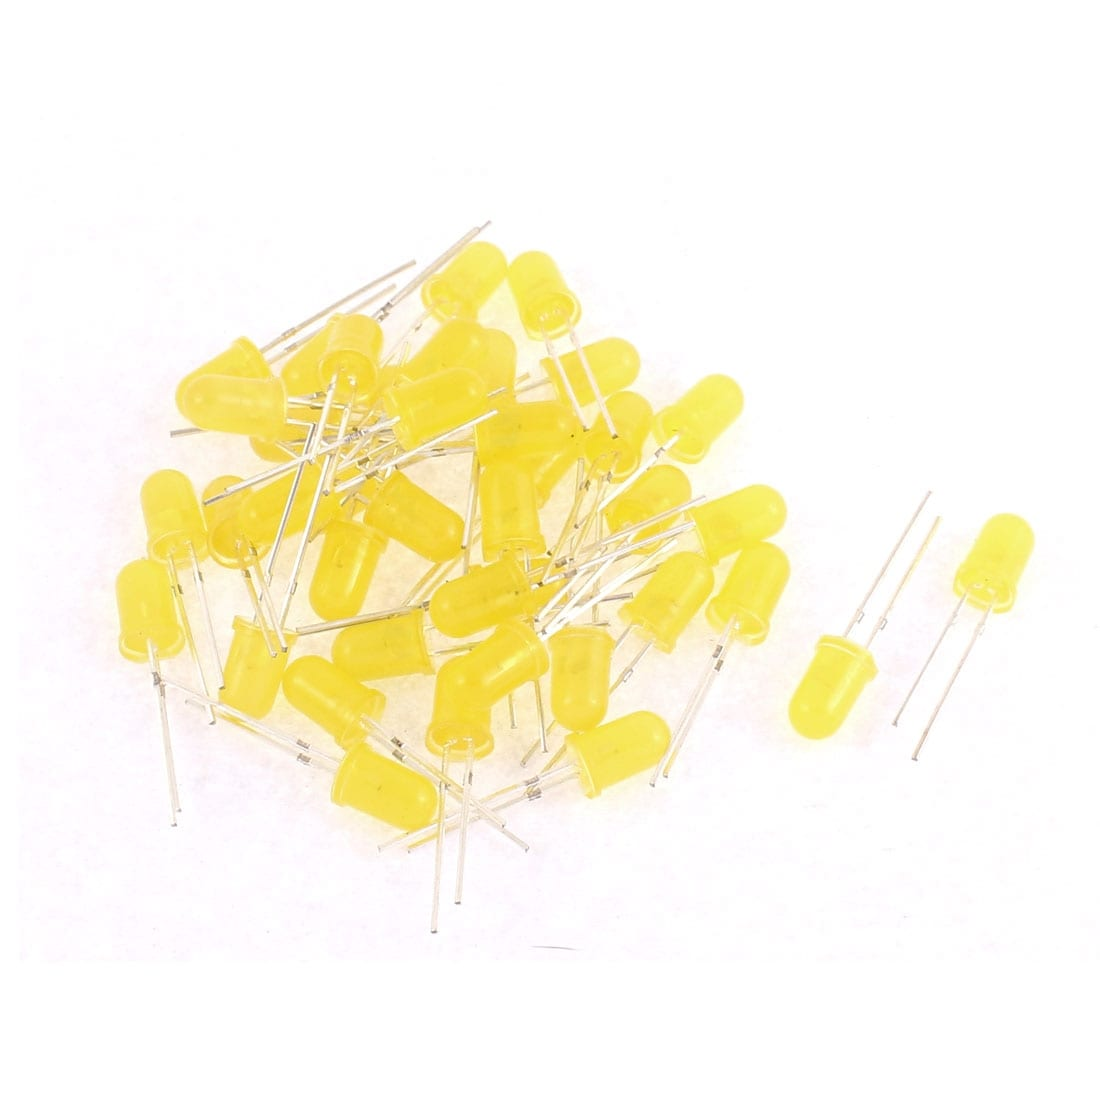 Shop 40pcs 5mm Yellow Color Led Light Emitting Diode Beads Lights Electrical Circuits Bulb Lamp On Sale Free Shipping Orders Over 45 18309263